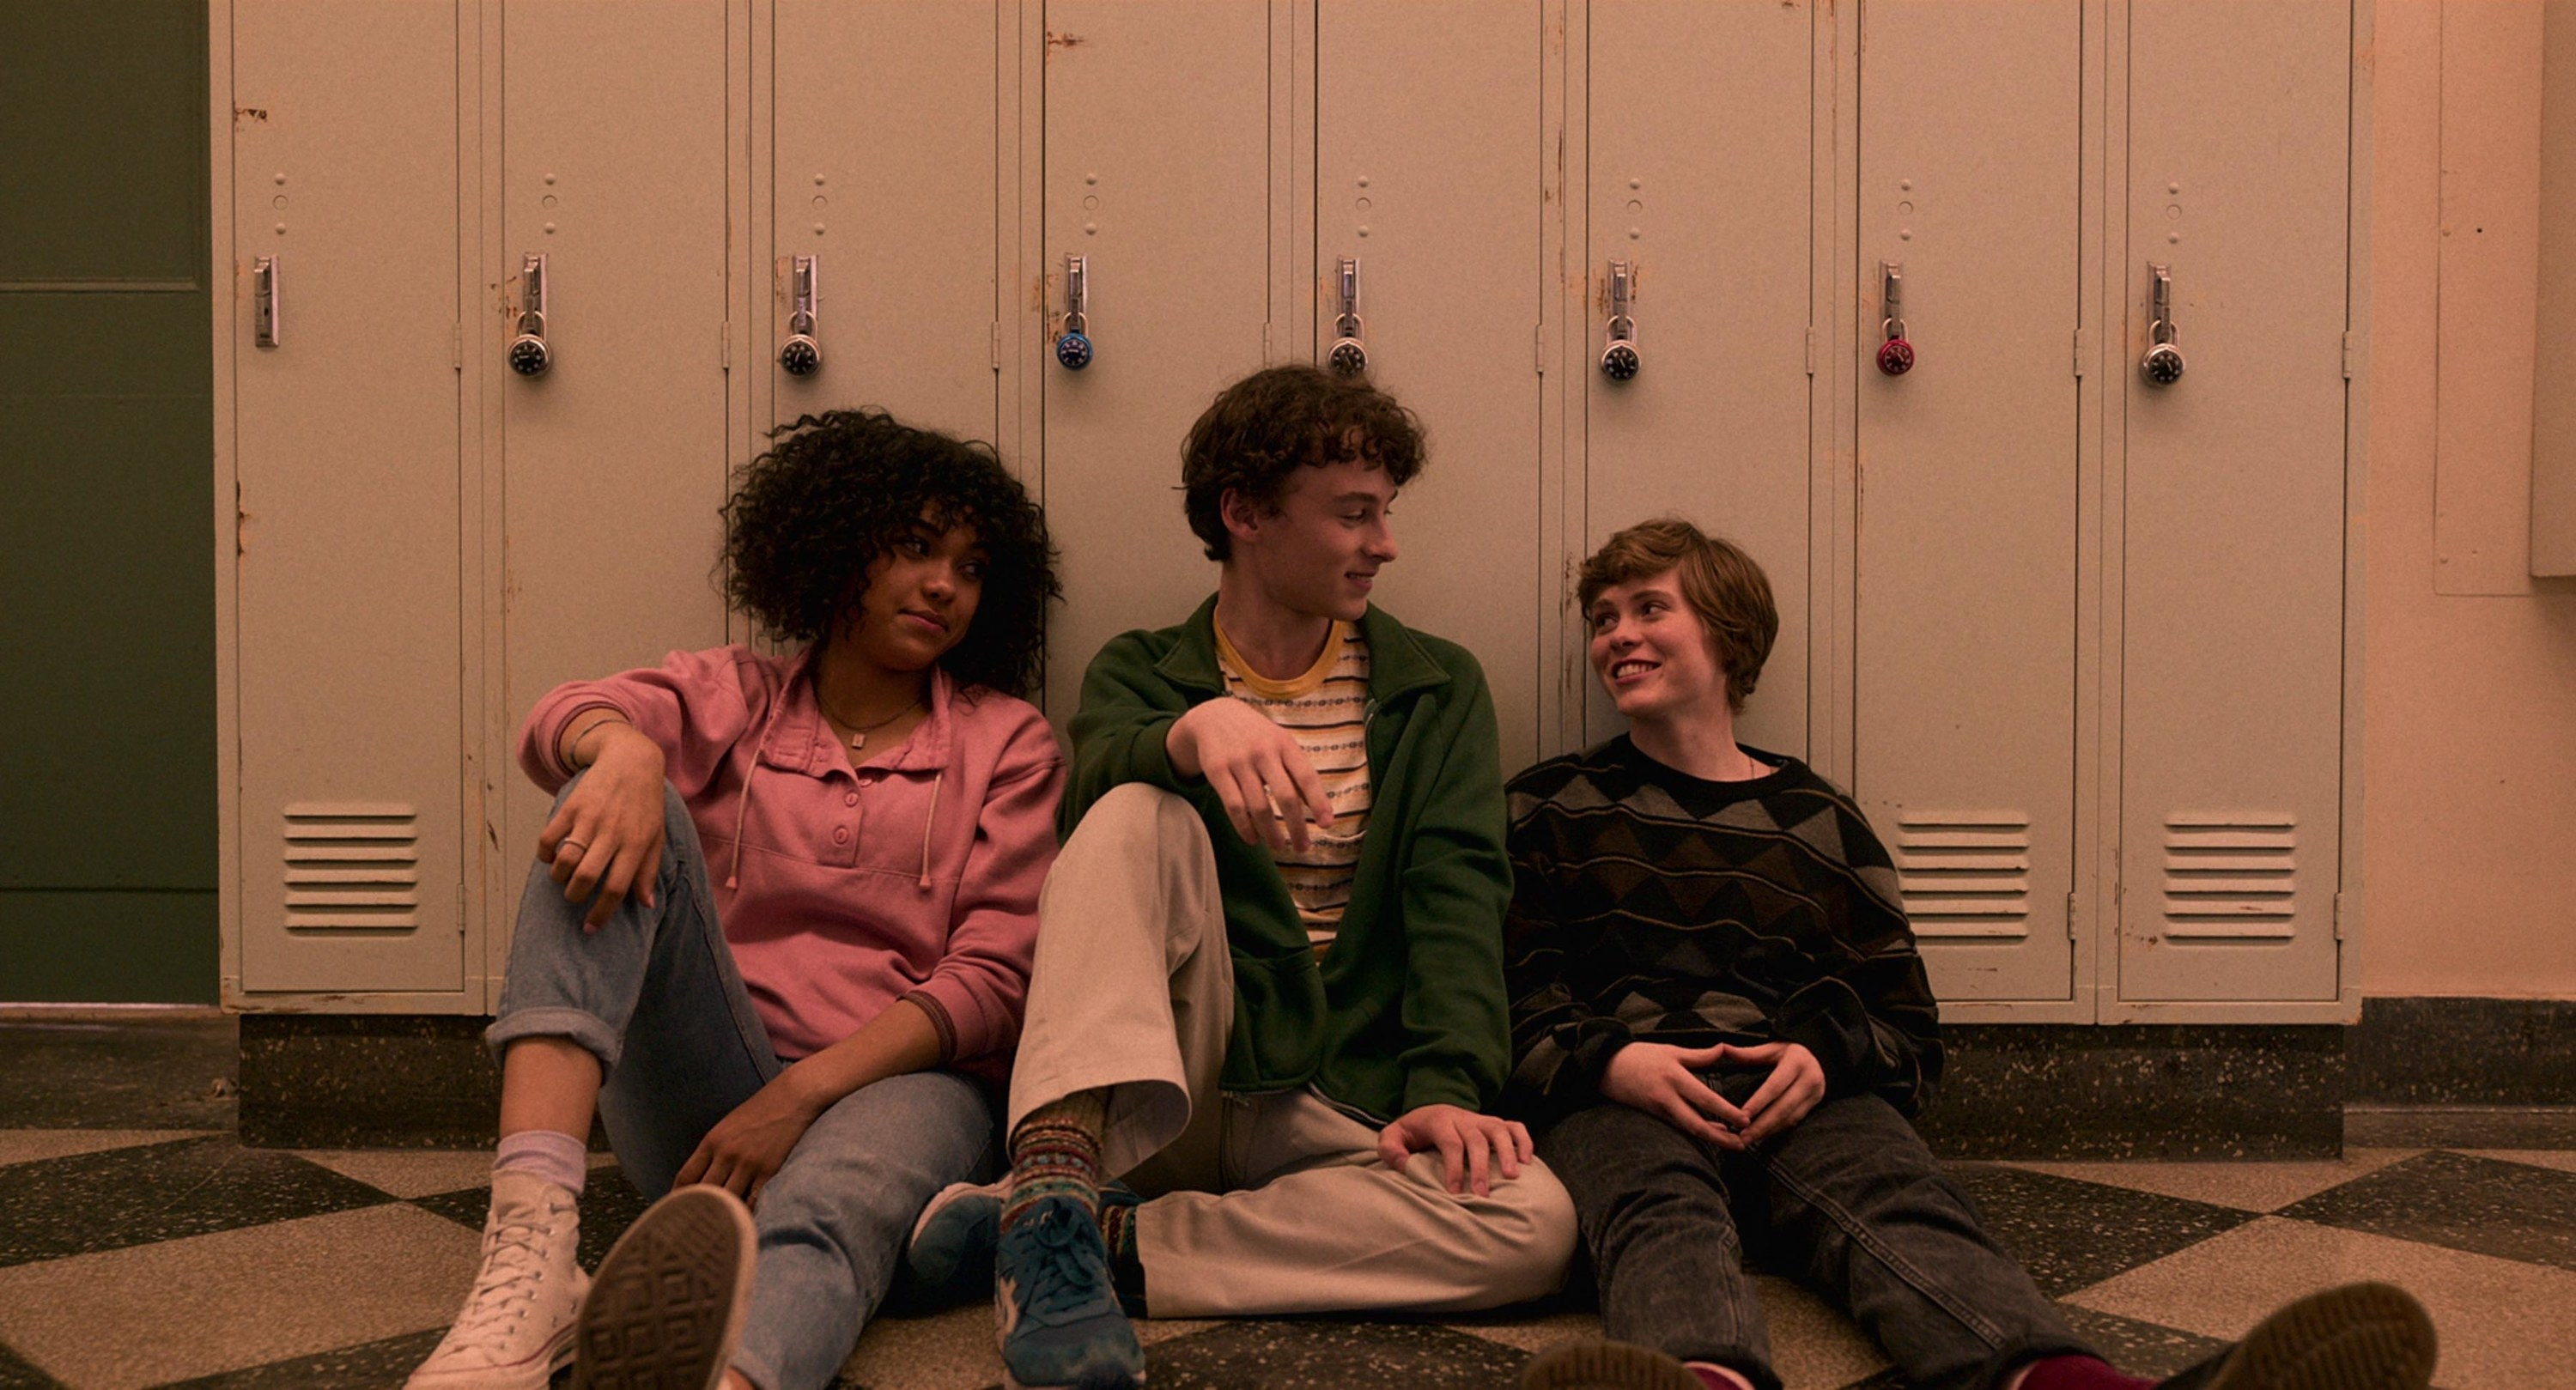 Sofia Bryant, Wyatt Oleff, and Sophia Lillis in I Am Not Okay With This